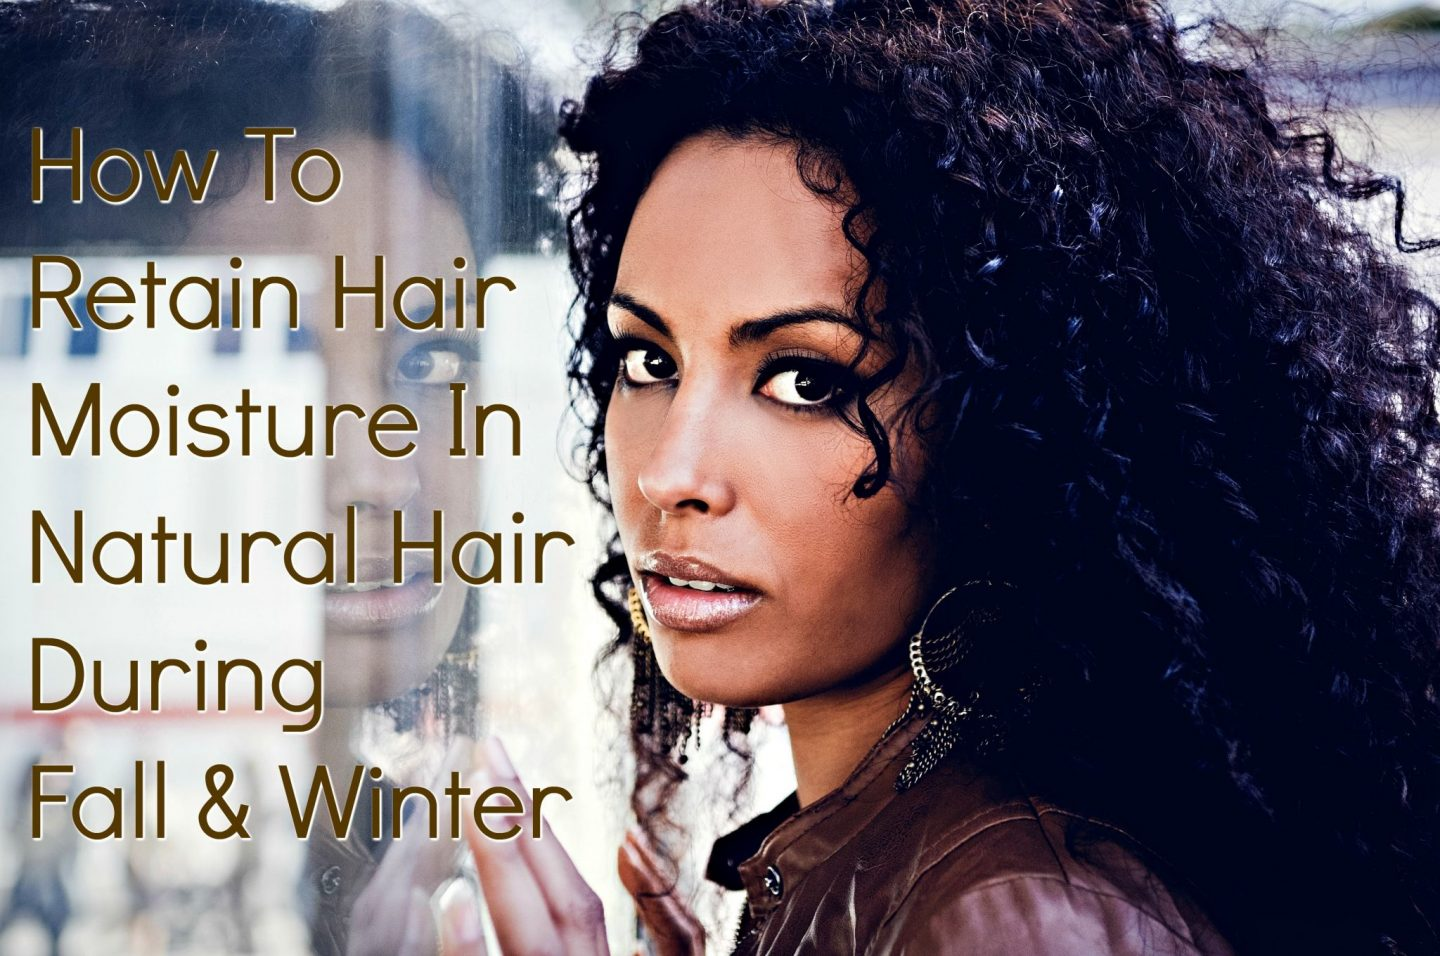 How To Retain Hair Moisture In Natural Hair During Fall & Winter. The dryness and cold will make it harder to keep hair moisturized so check out tips.